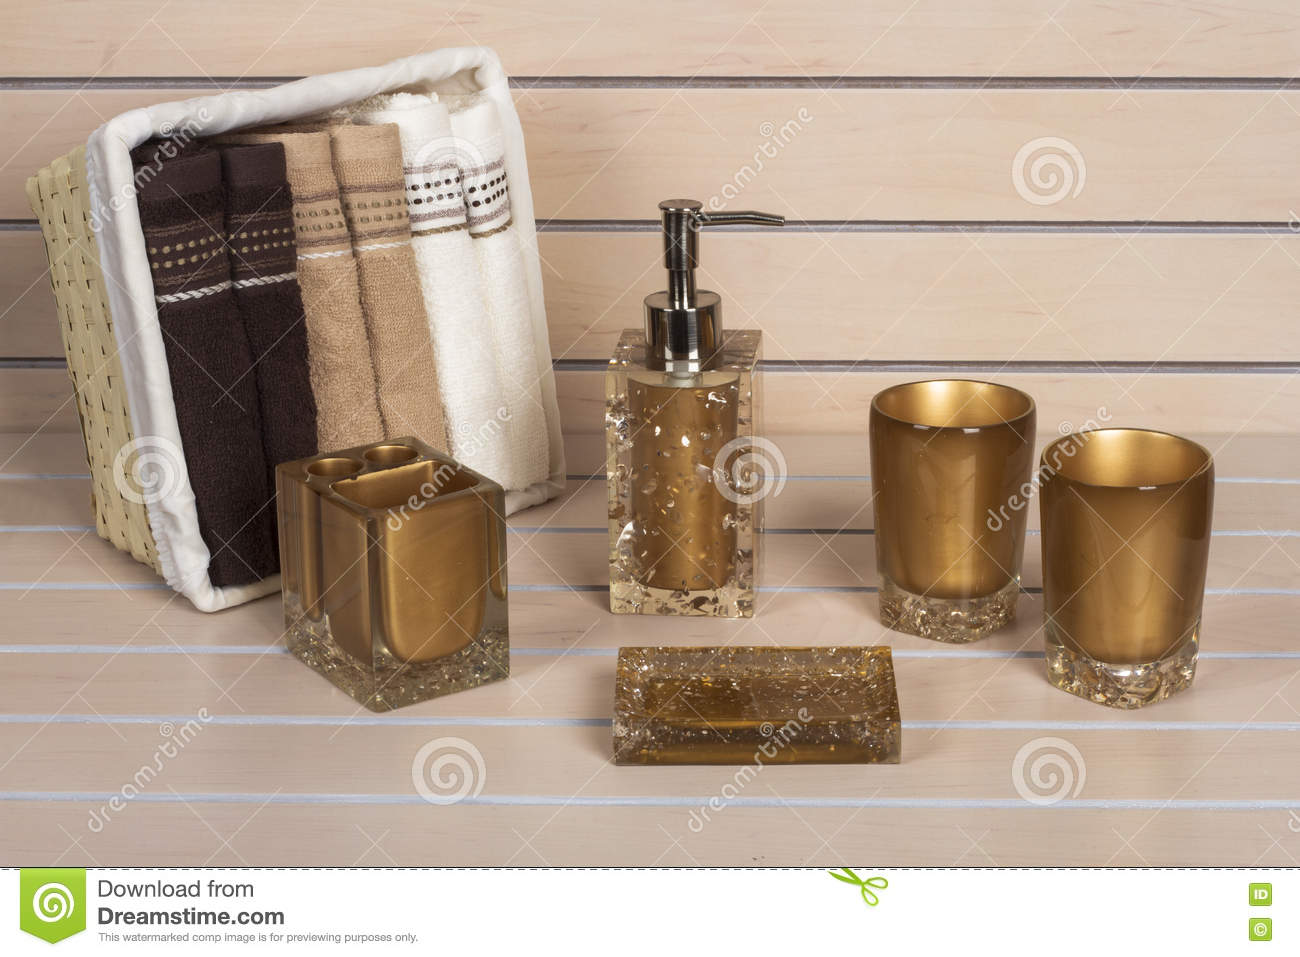 Brown Modern Bathroom Accessories With Towel Basket Stock Photo Image Of White Brush 71499786